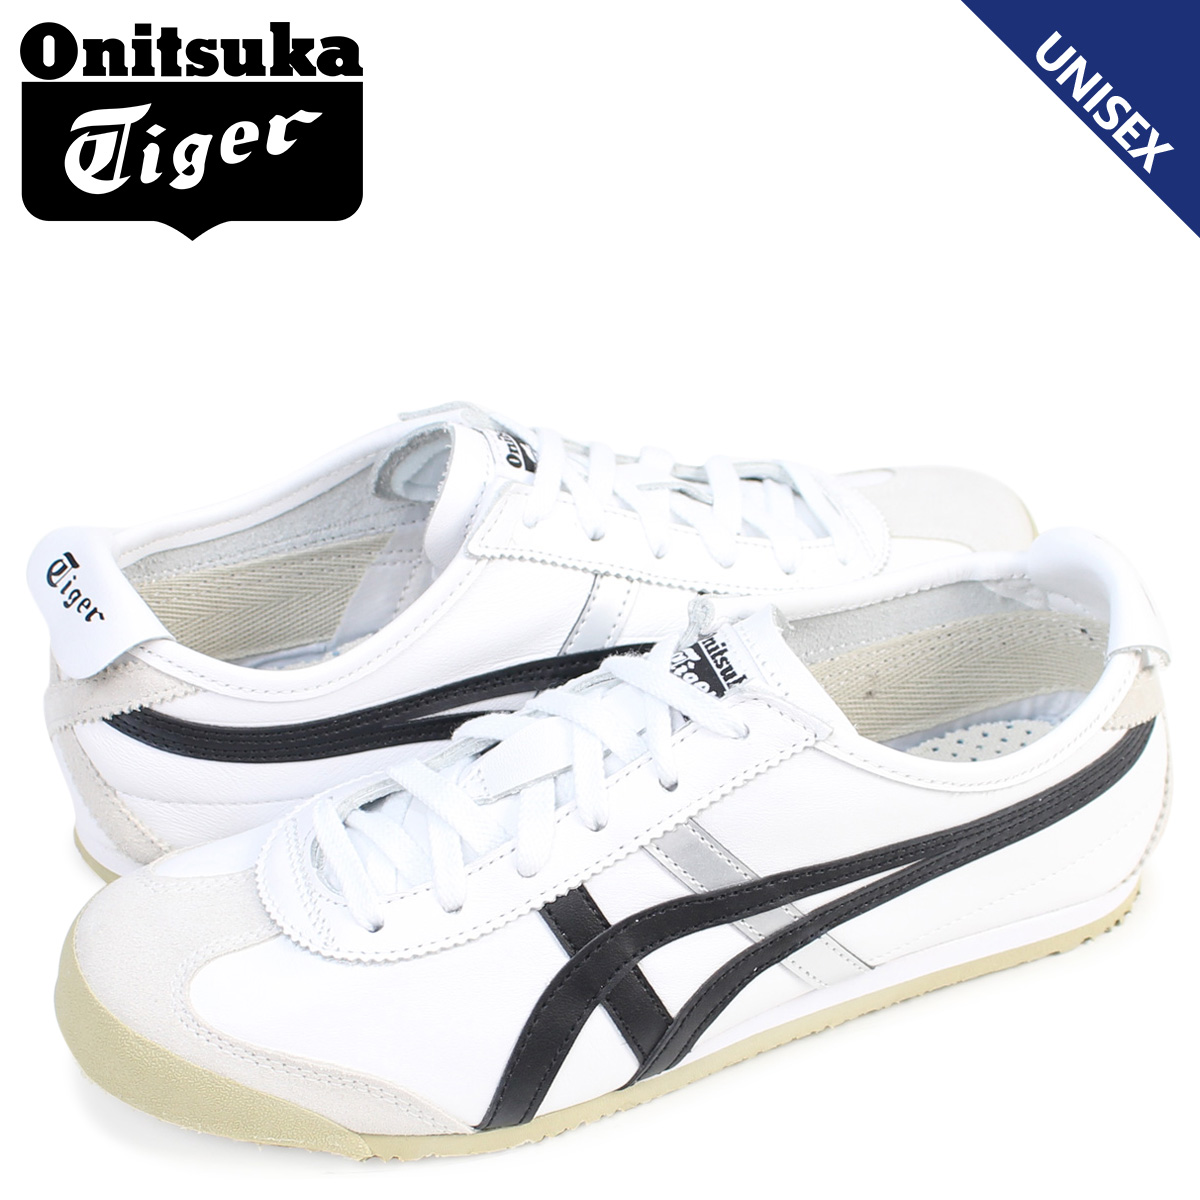 new product ef375 c0f9e Onitsuka Tiger Mexico 66 Onitsuka tiger MEXICO 66 men's lady's sneakers  DL408-0190 shoes white white